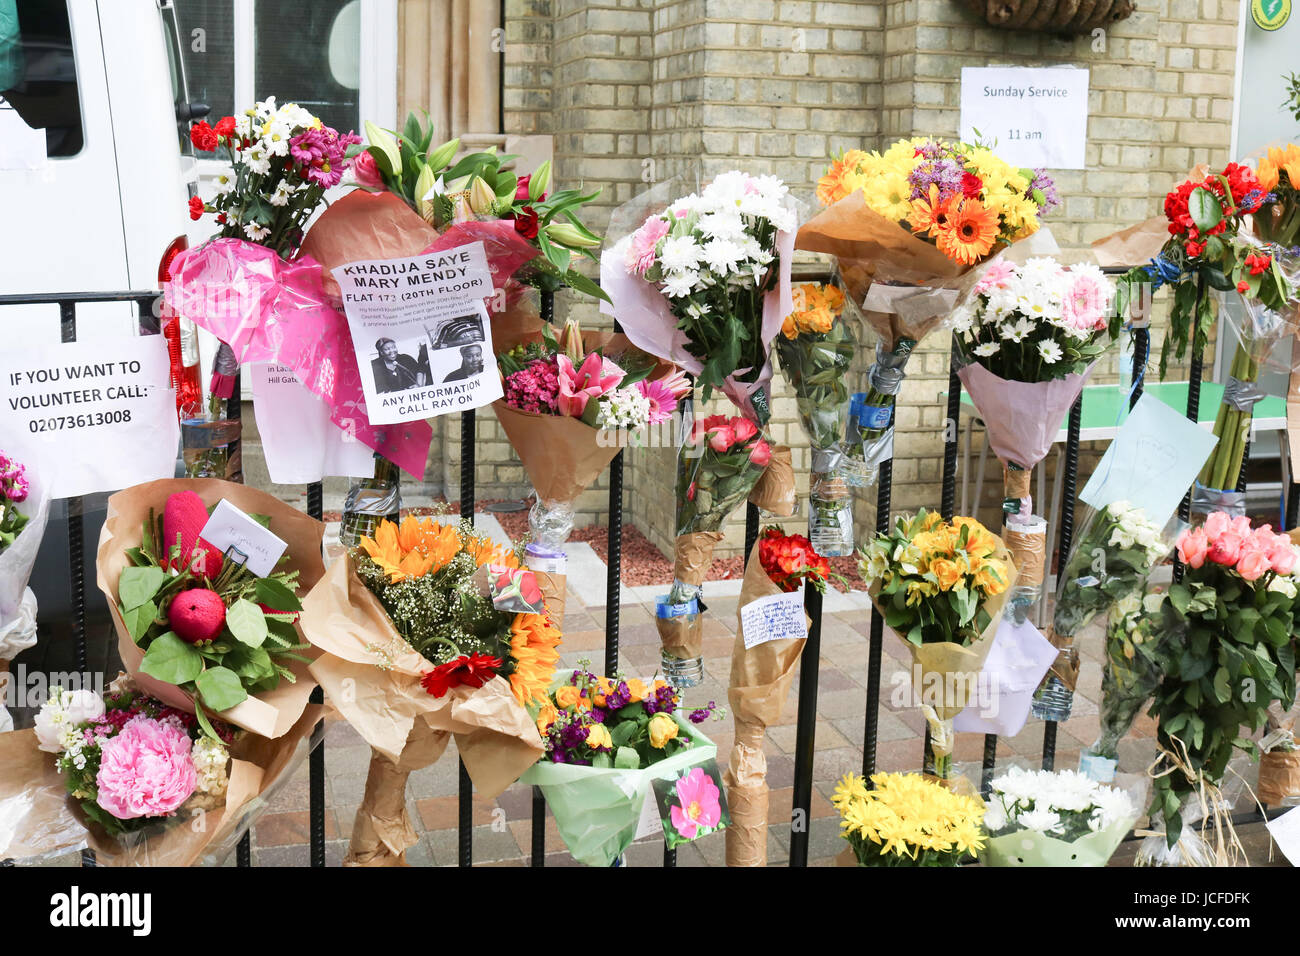 London, UK. 16th June, 2017. Floral tributes outside the Notitng Hill Methodist church for the vicitms of the Grenfell - Stock Image